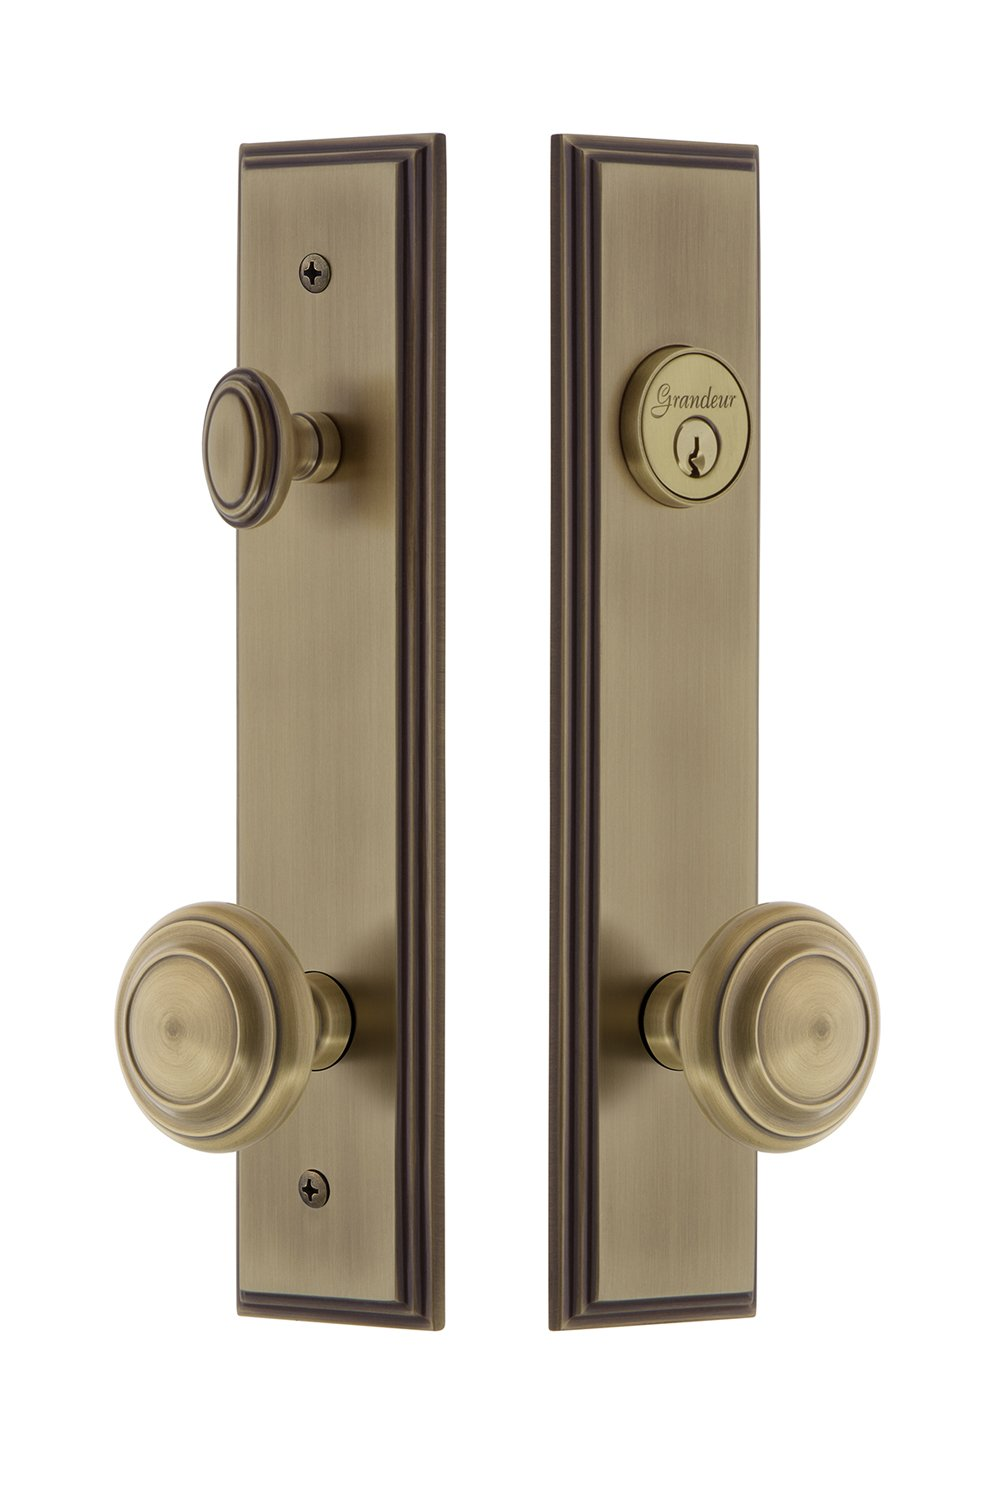 Backset Size 2.375 Grandeur Hardware 840077 Carre Tall Plate Complete Entry Set with Circulaire Knob Antique Pewter